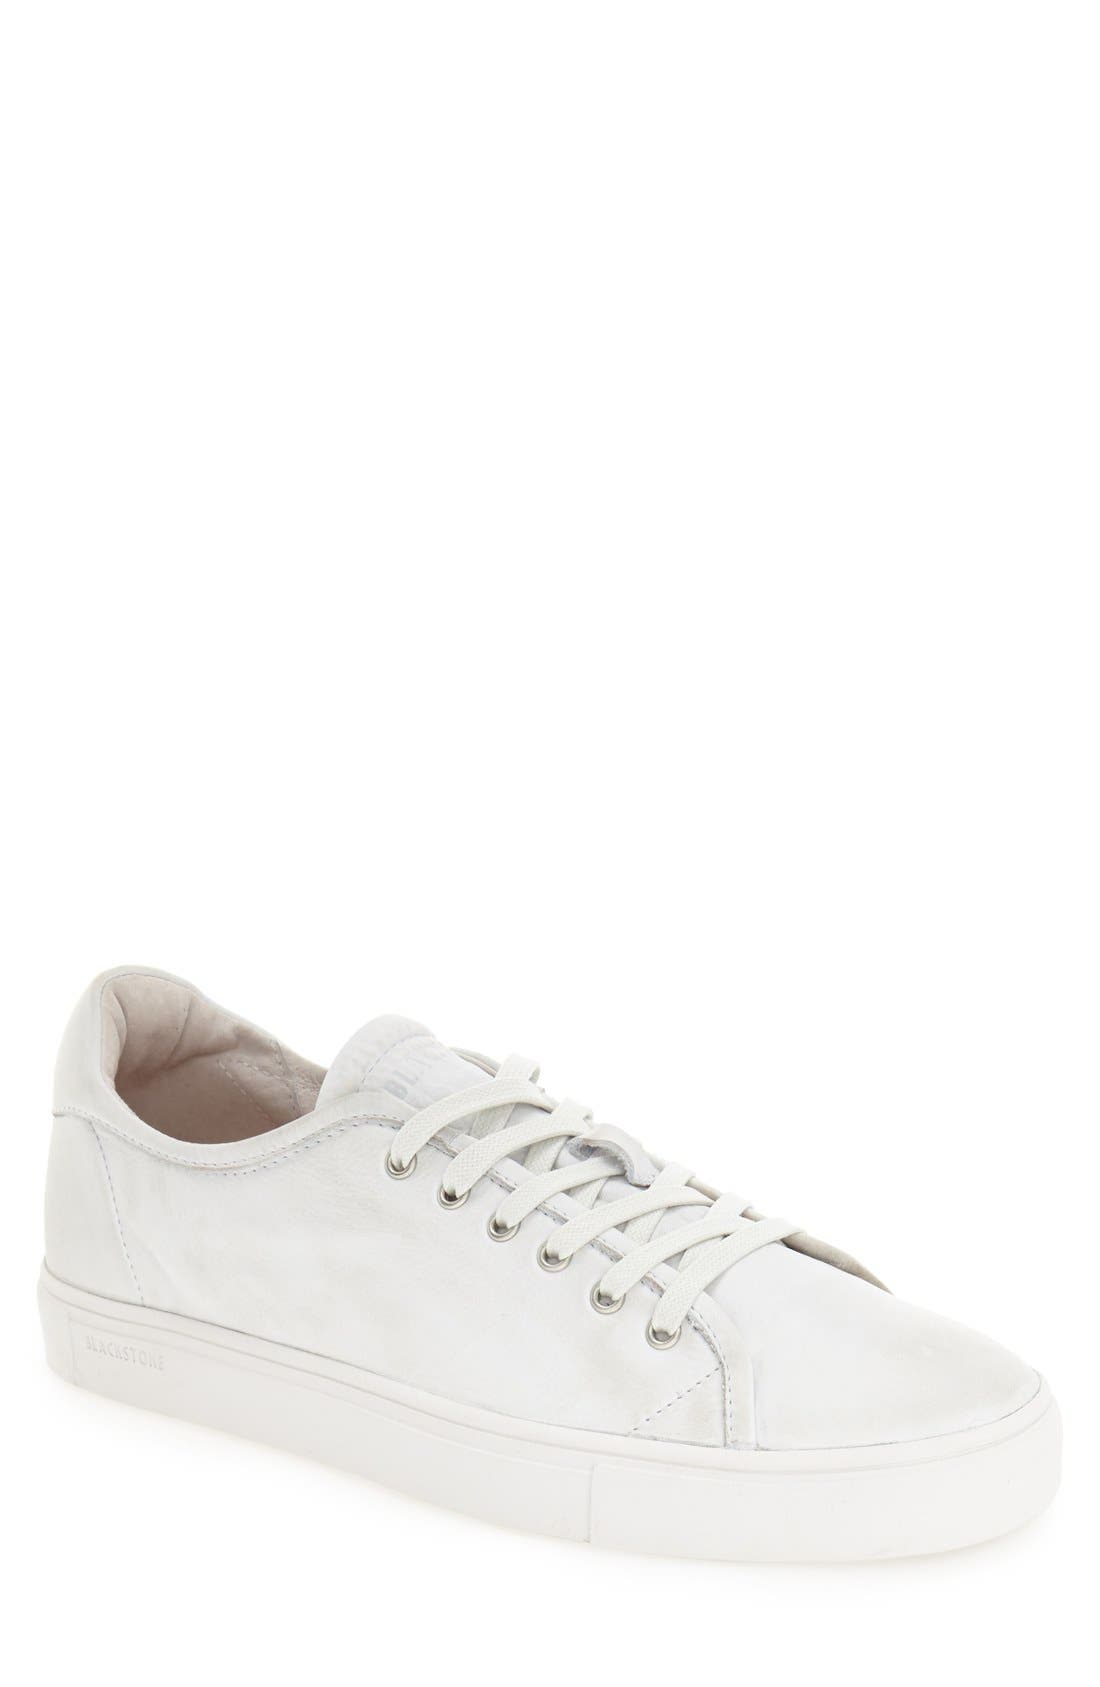 Blacktone 'LM24' Sneaker (Men)